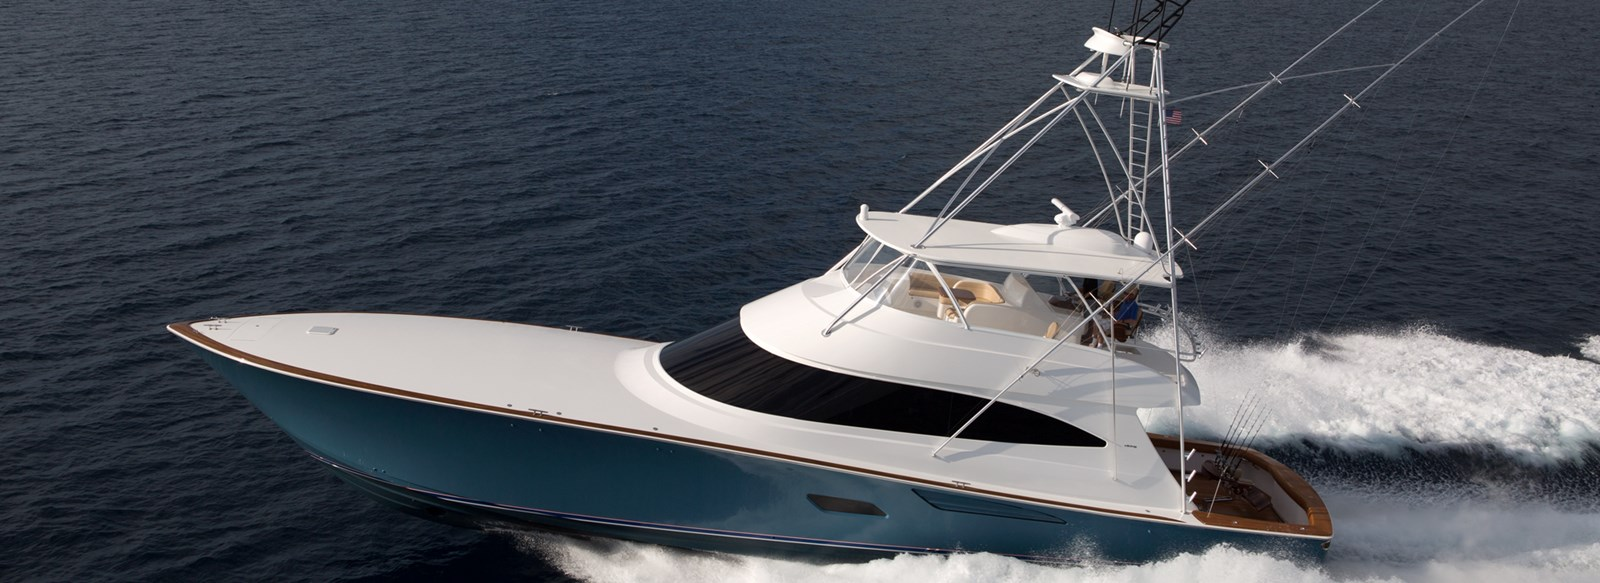 New Viking 80 Convertible Yachts For Sale